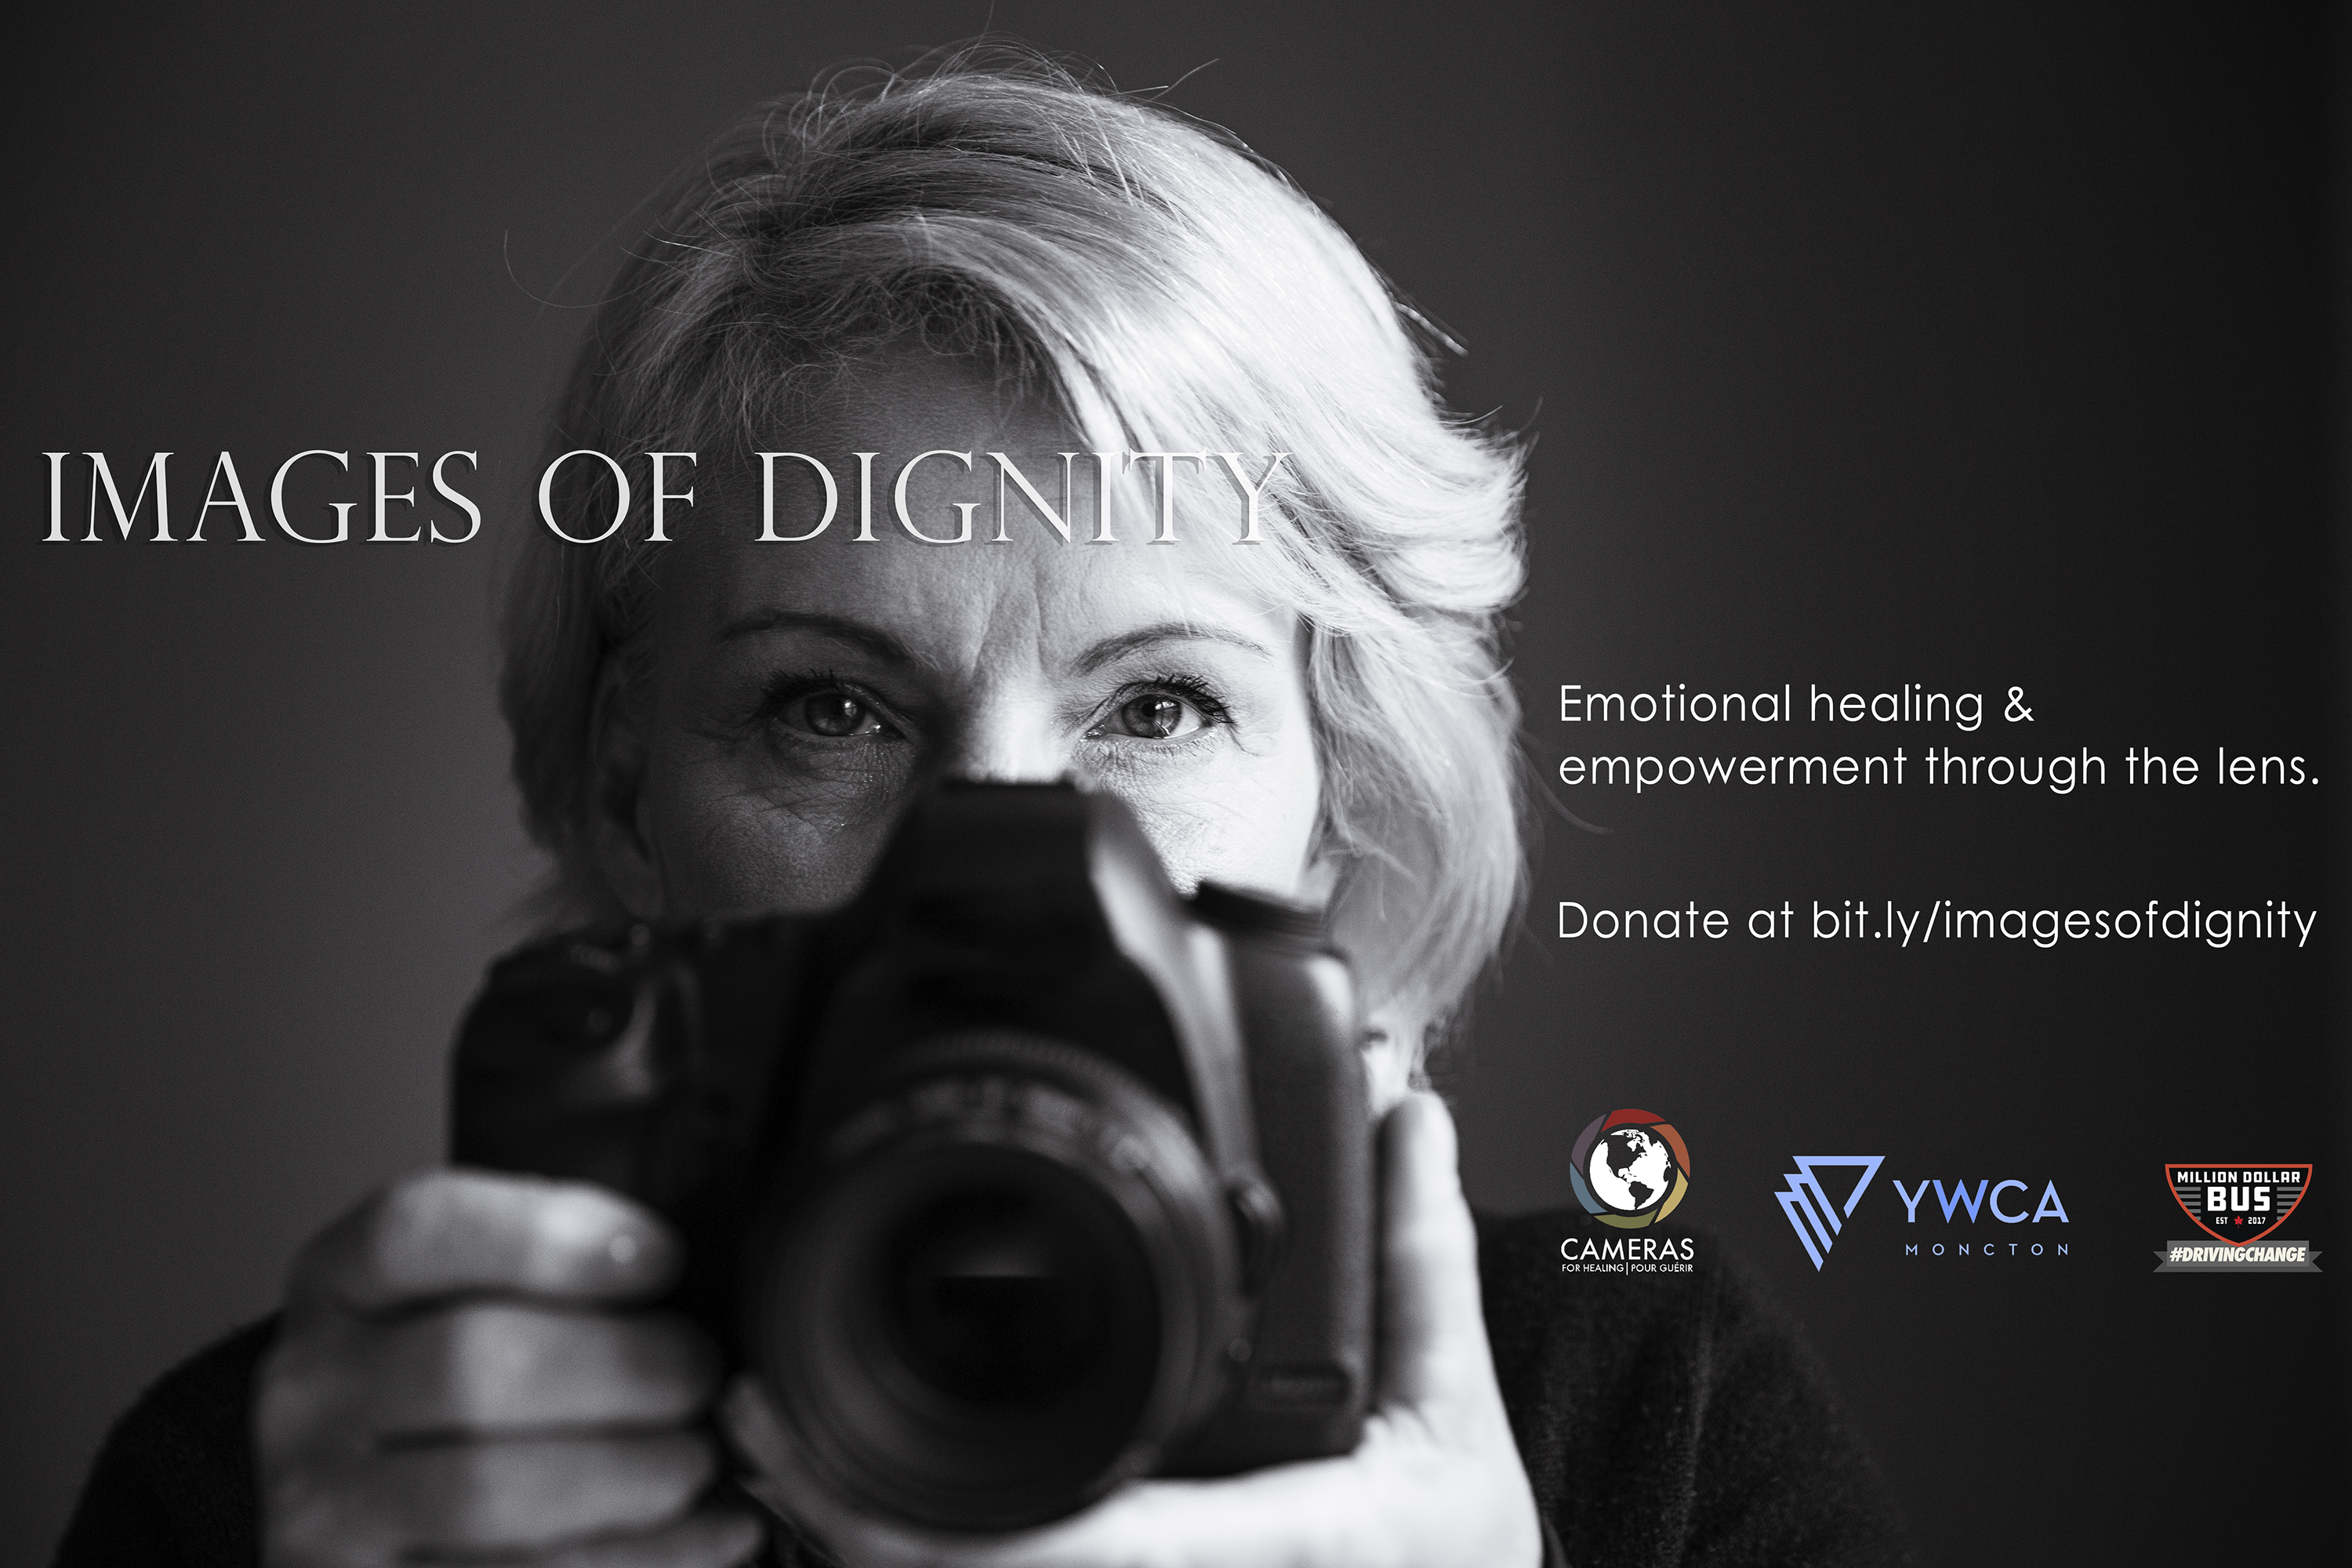 Images of Dignity Moncton Cameras for healing YWCA